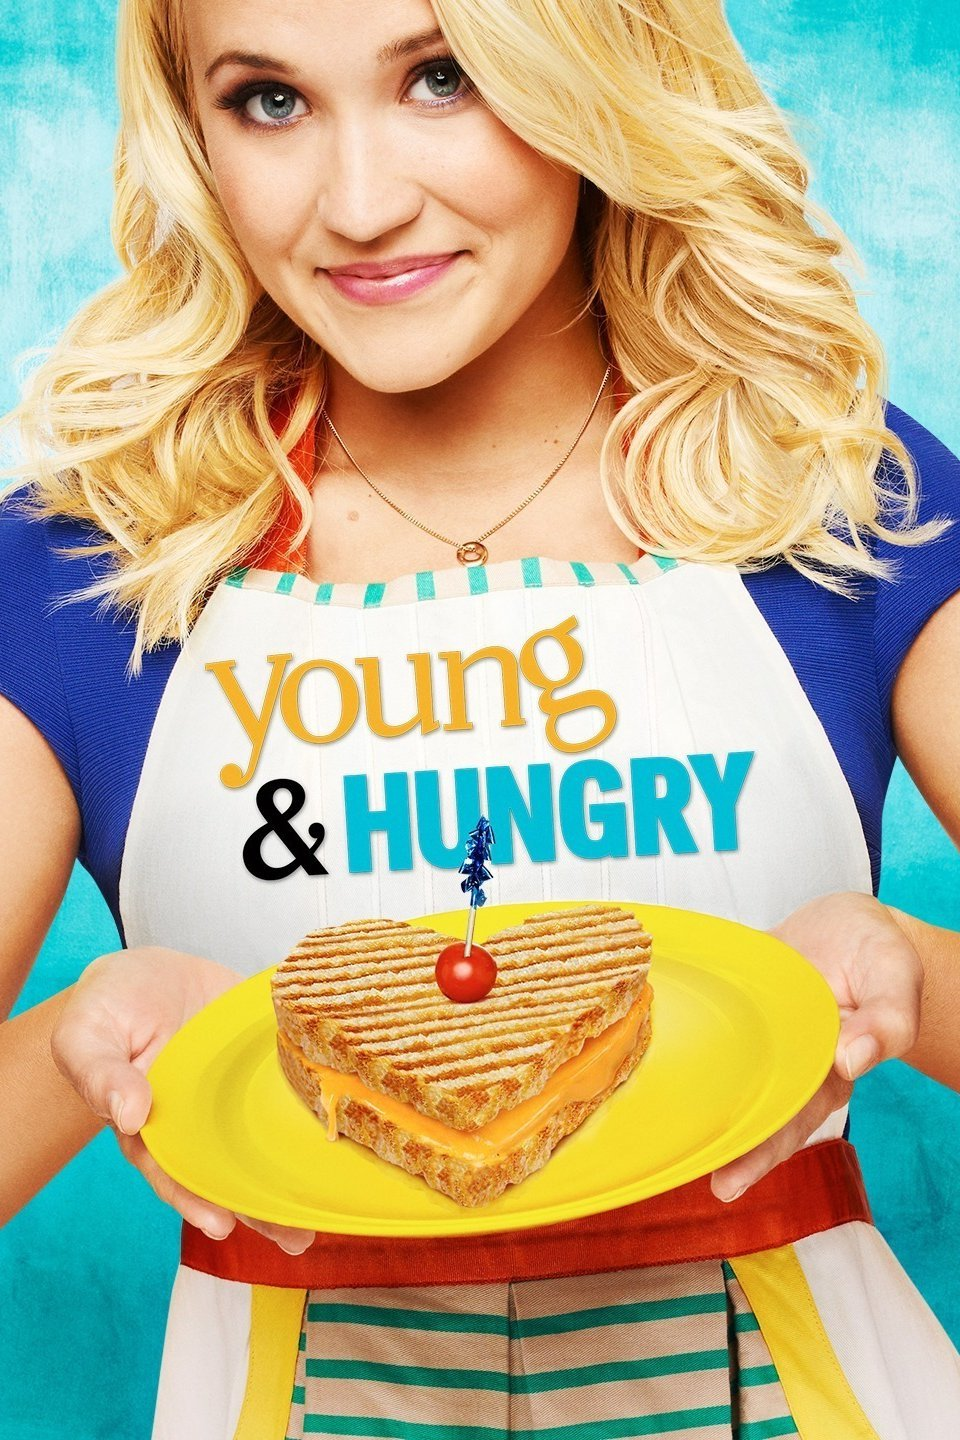 Young & Hungry Season 5 Episode 2 Download HDTV Micromkv